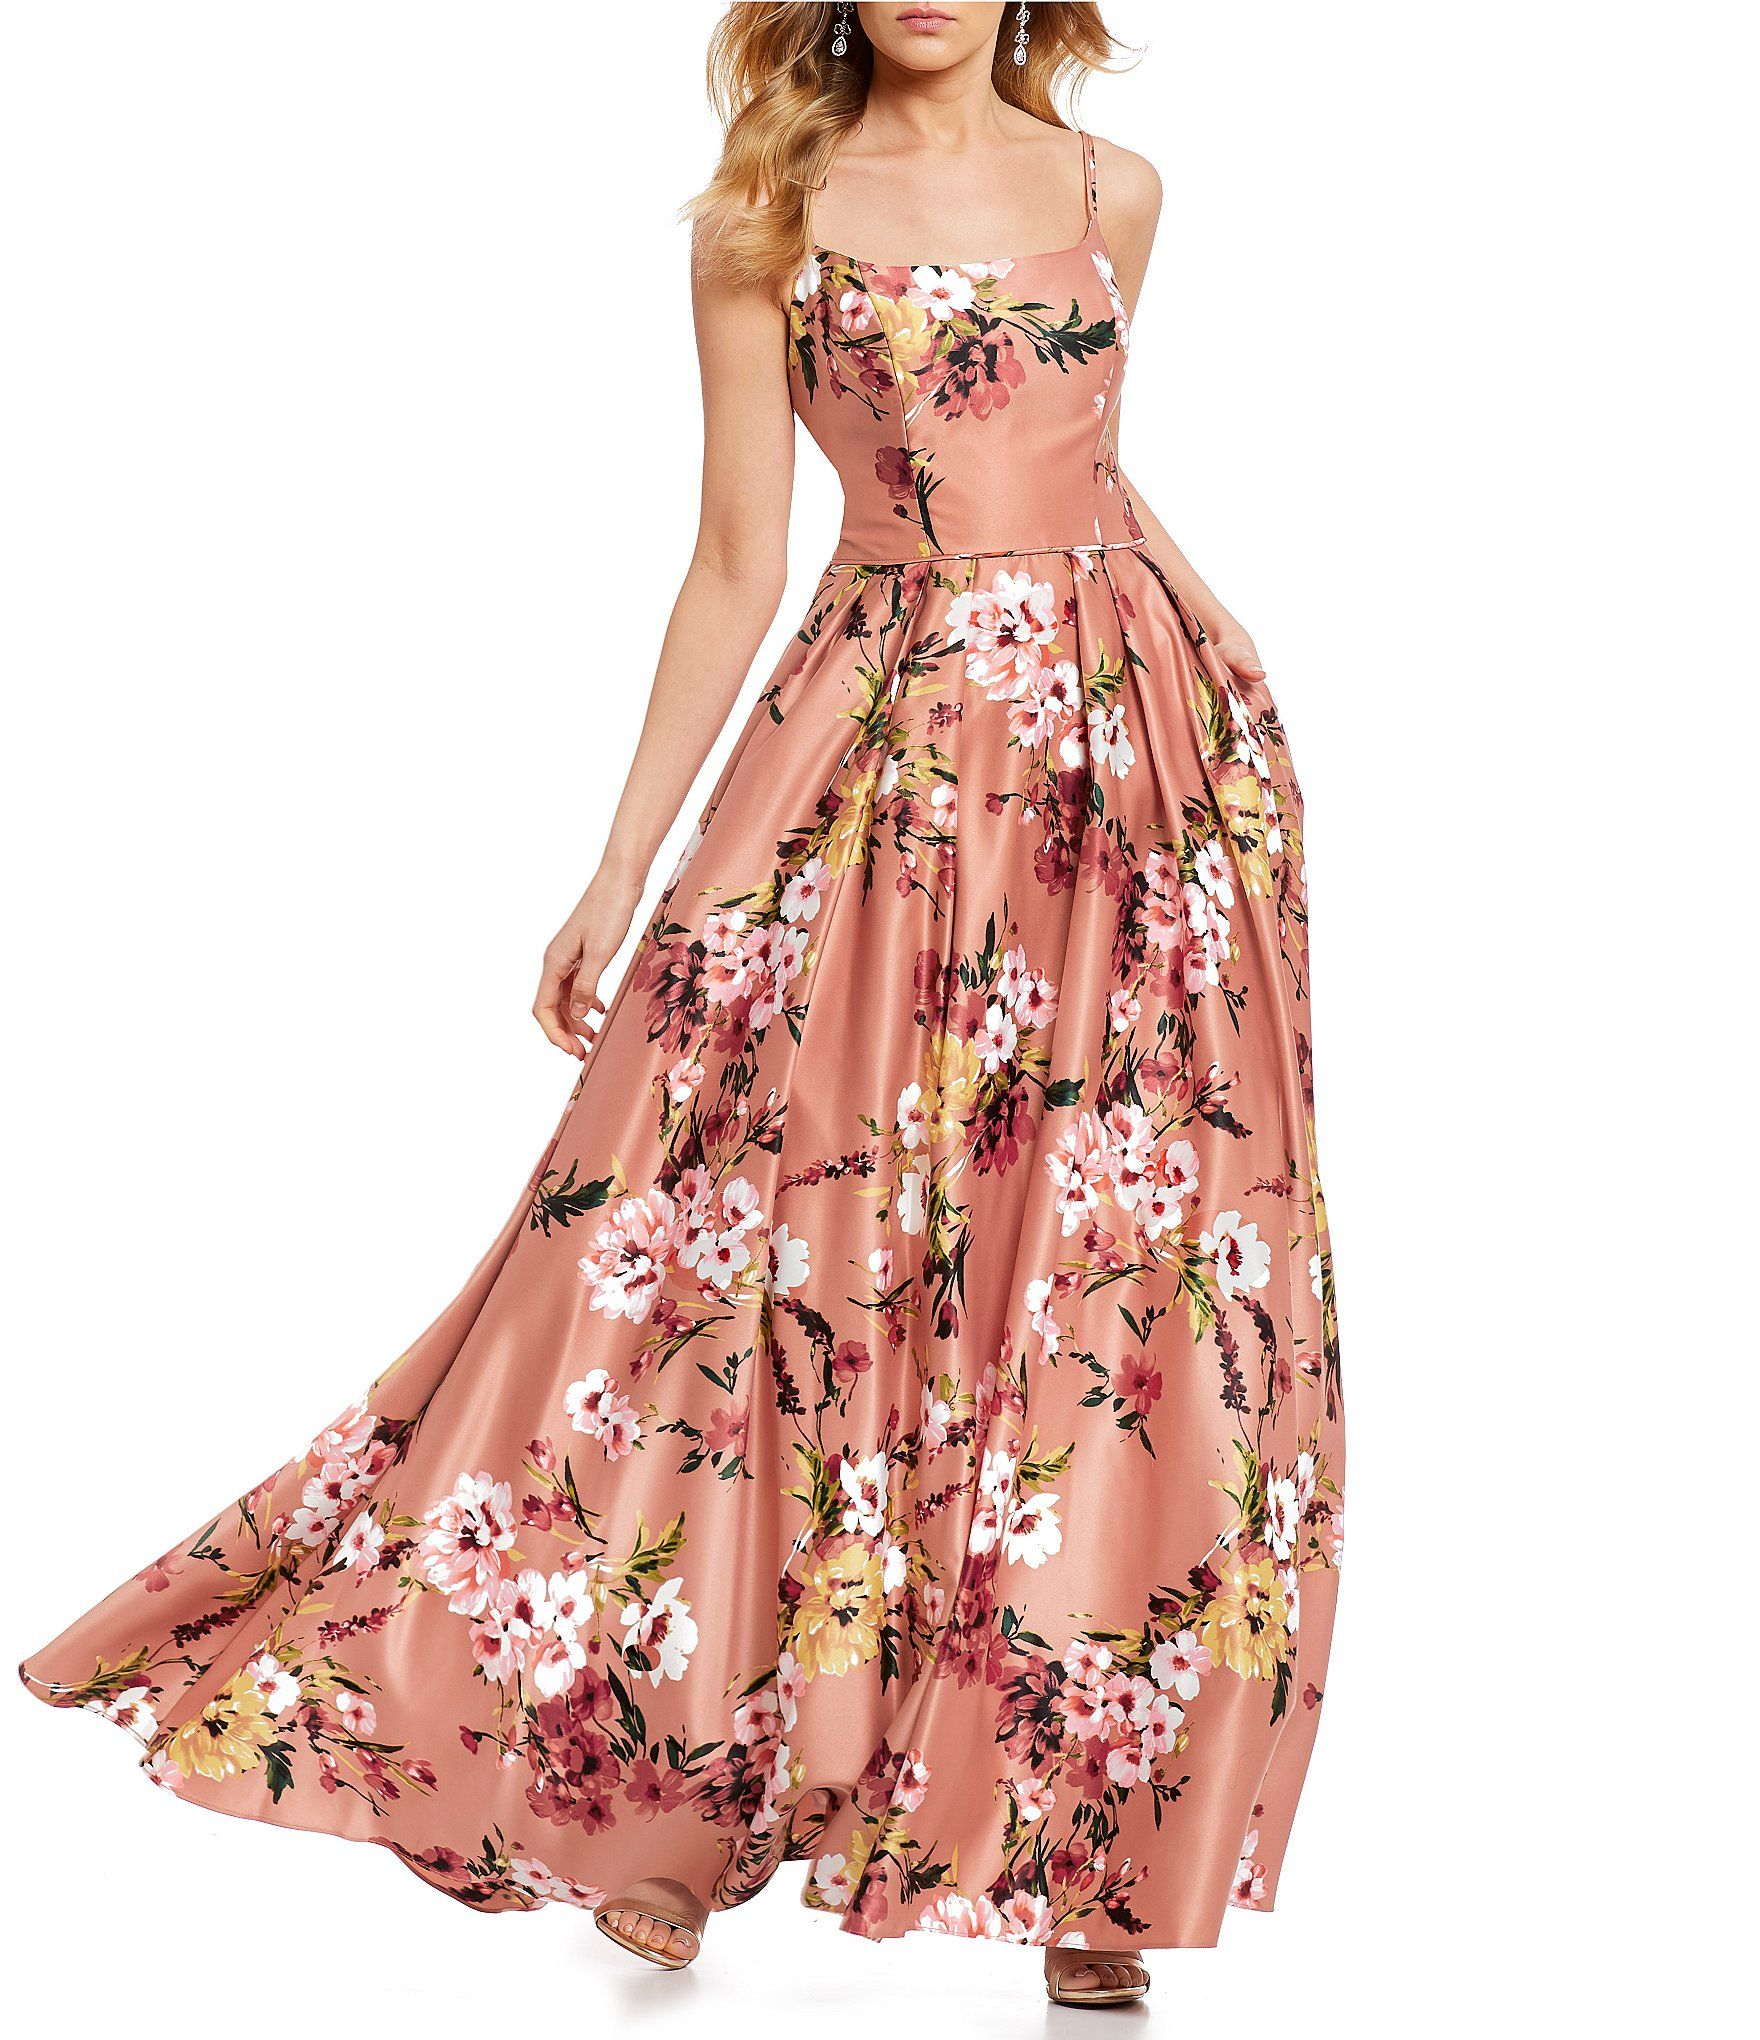 70f5ab99acc Shop for Blondie Nites Floral Print X-Back Ball Gown at Dillards.com. Visit  Dillards.com to find clothing